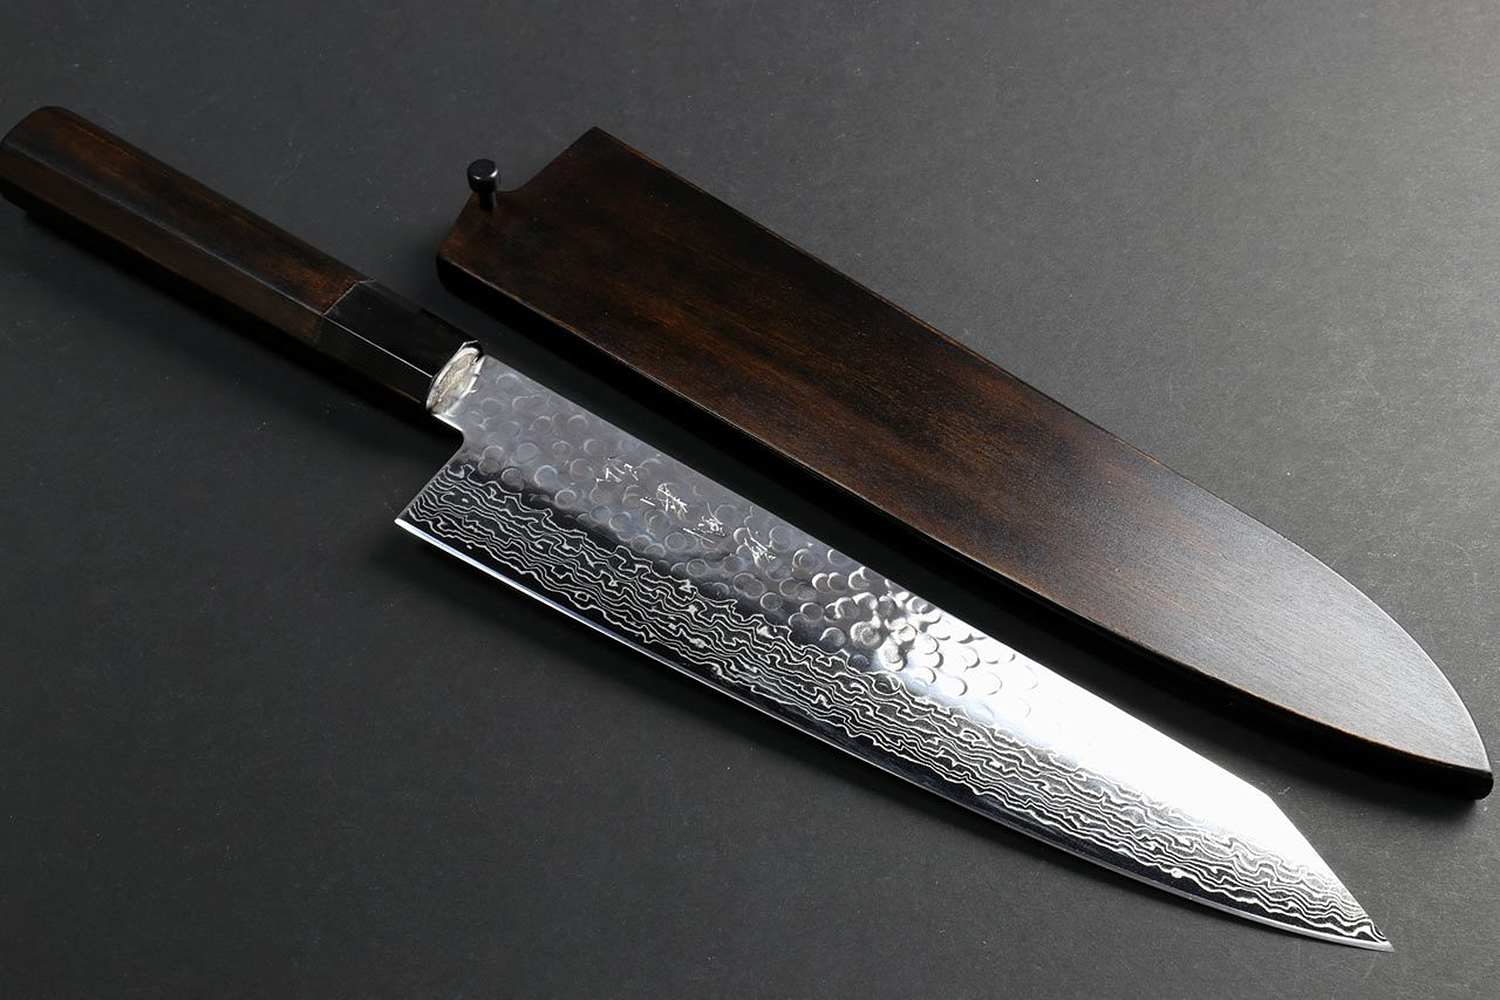 Yoshihiro Hammered Damascus NSW 46 Layers Kiritsuke (Sword Tip Knife) Japanese Sushi Sashimi Chef Knife 9.5inch(240mm) with Fuki Urushi Saya Cover